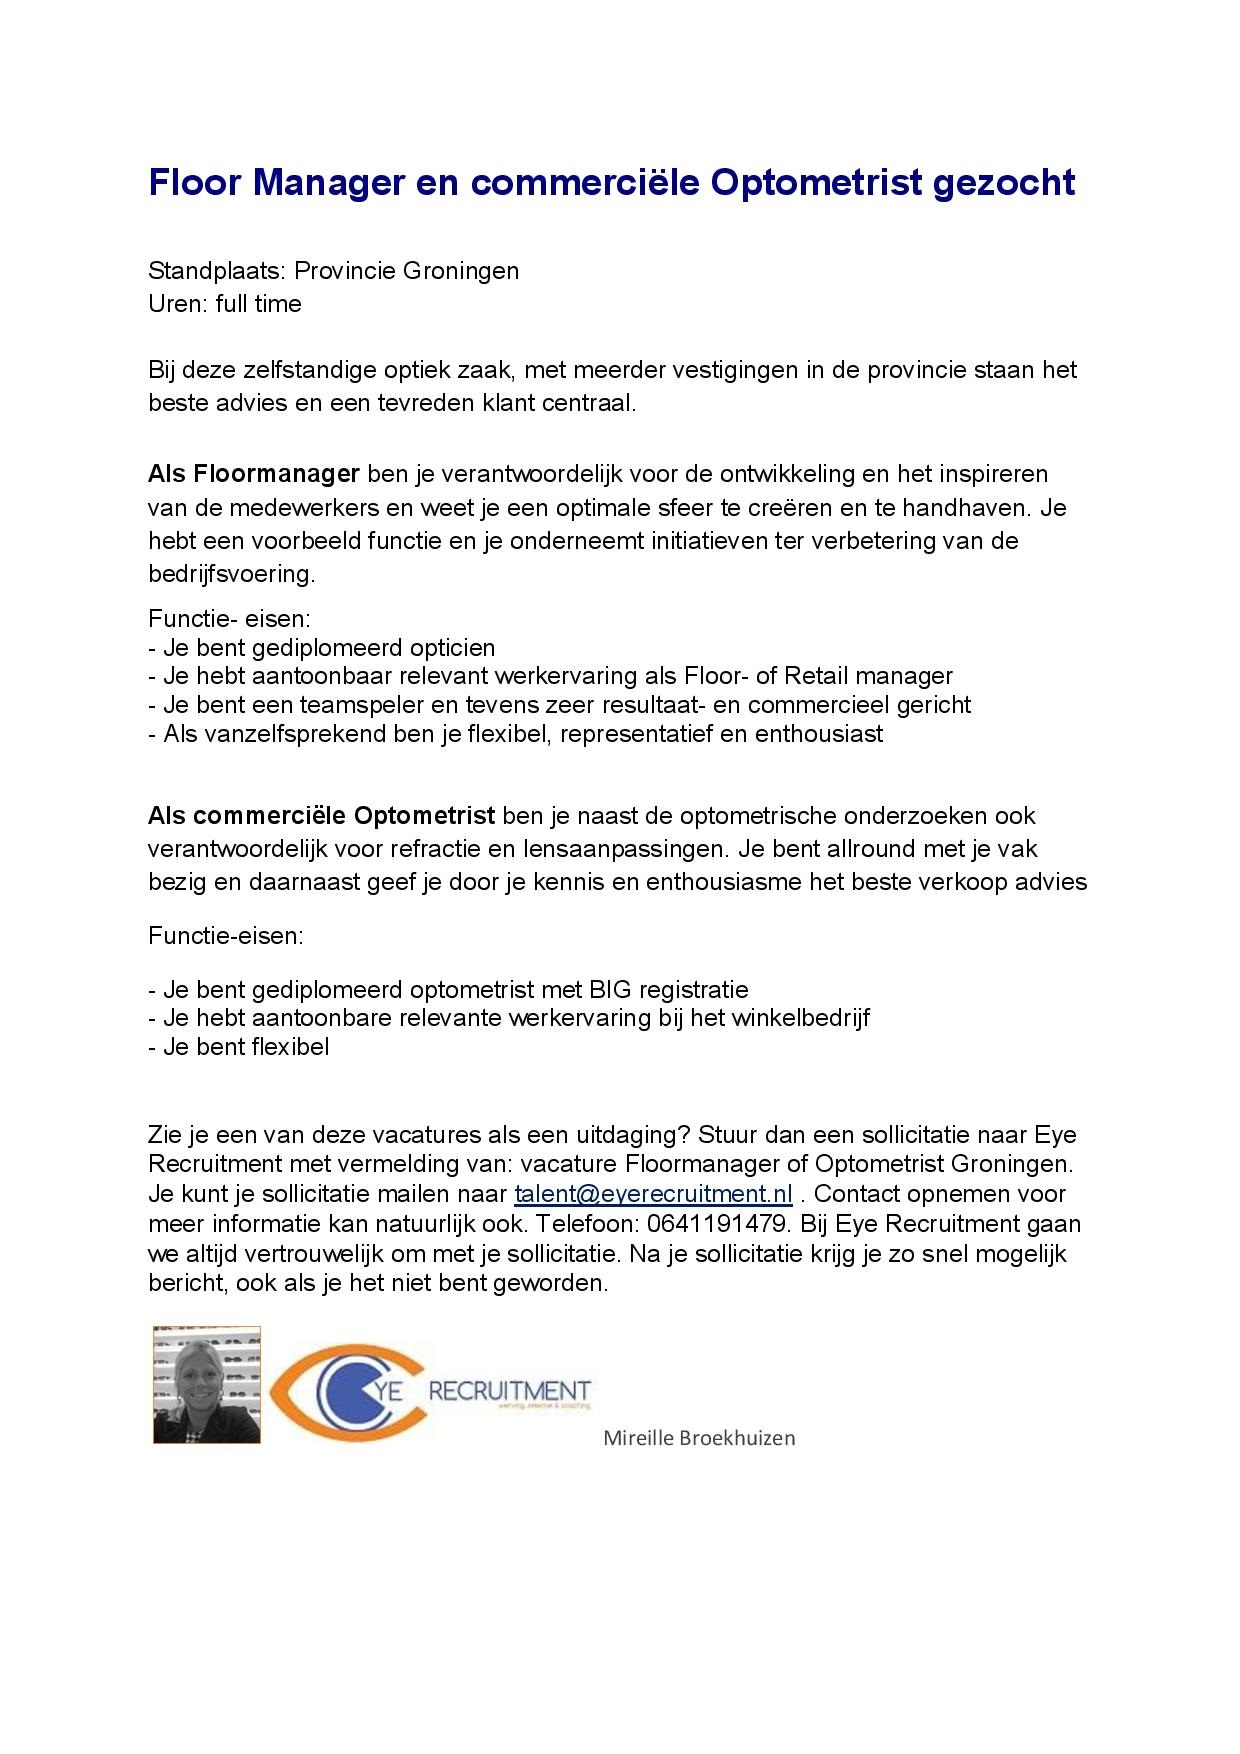 Vacatures Woldringh-page-001 (1)